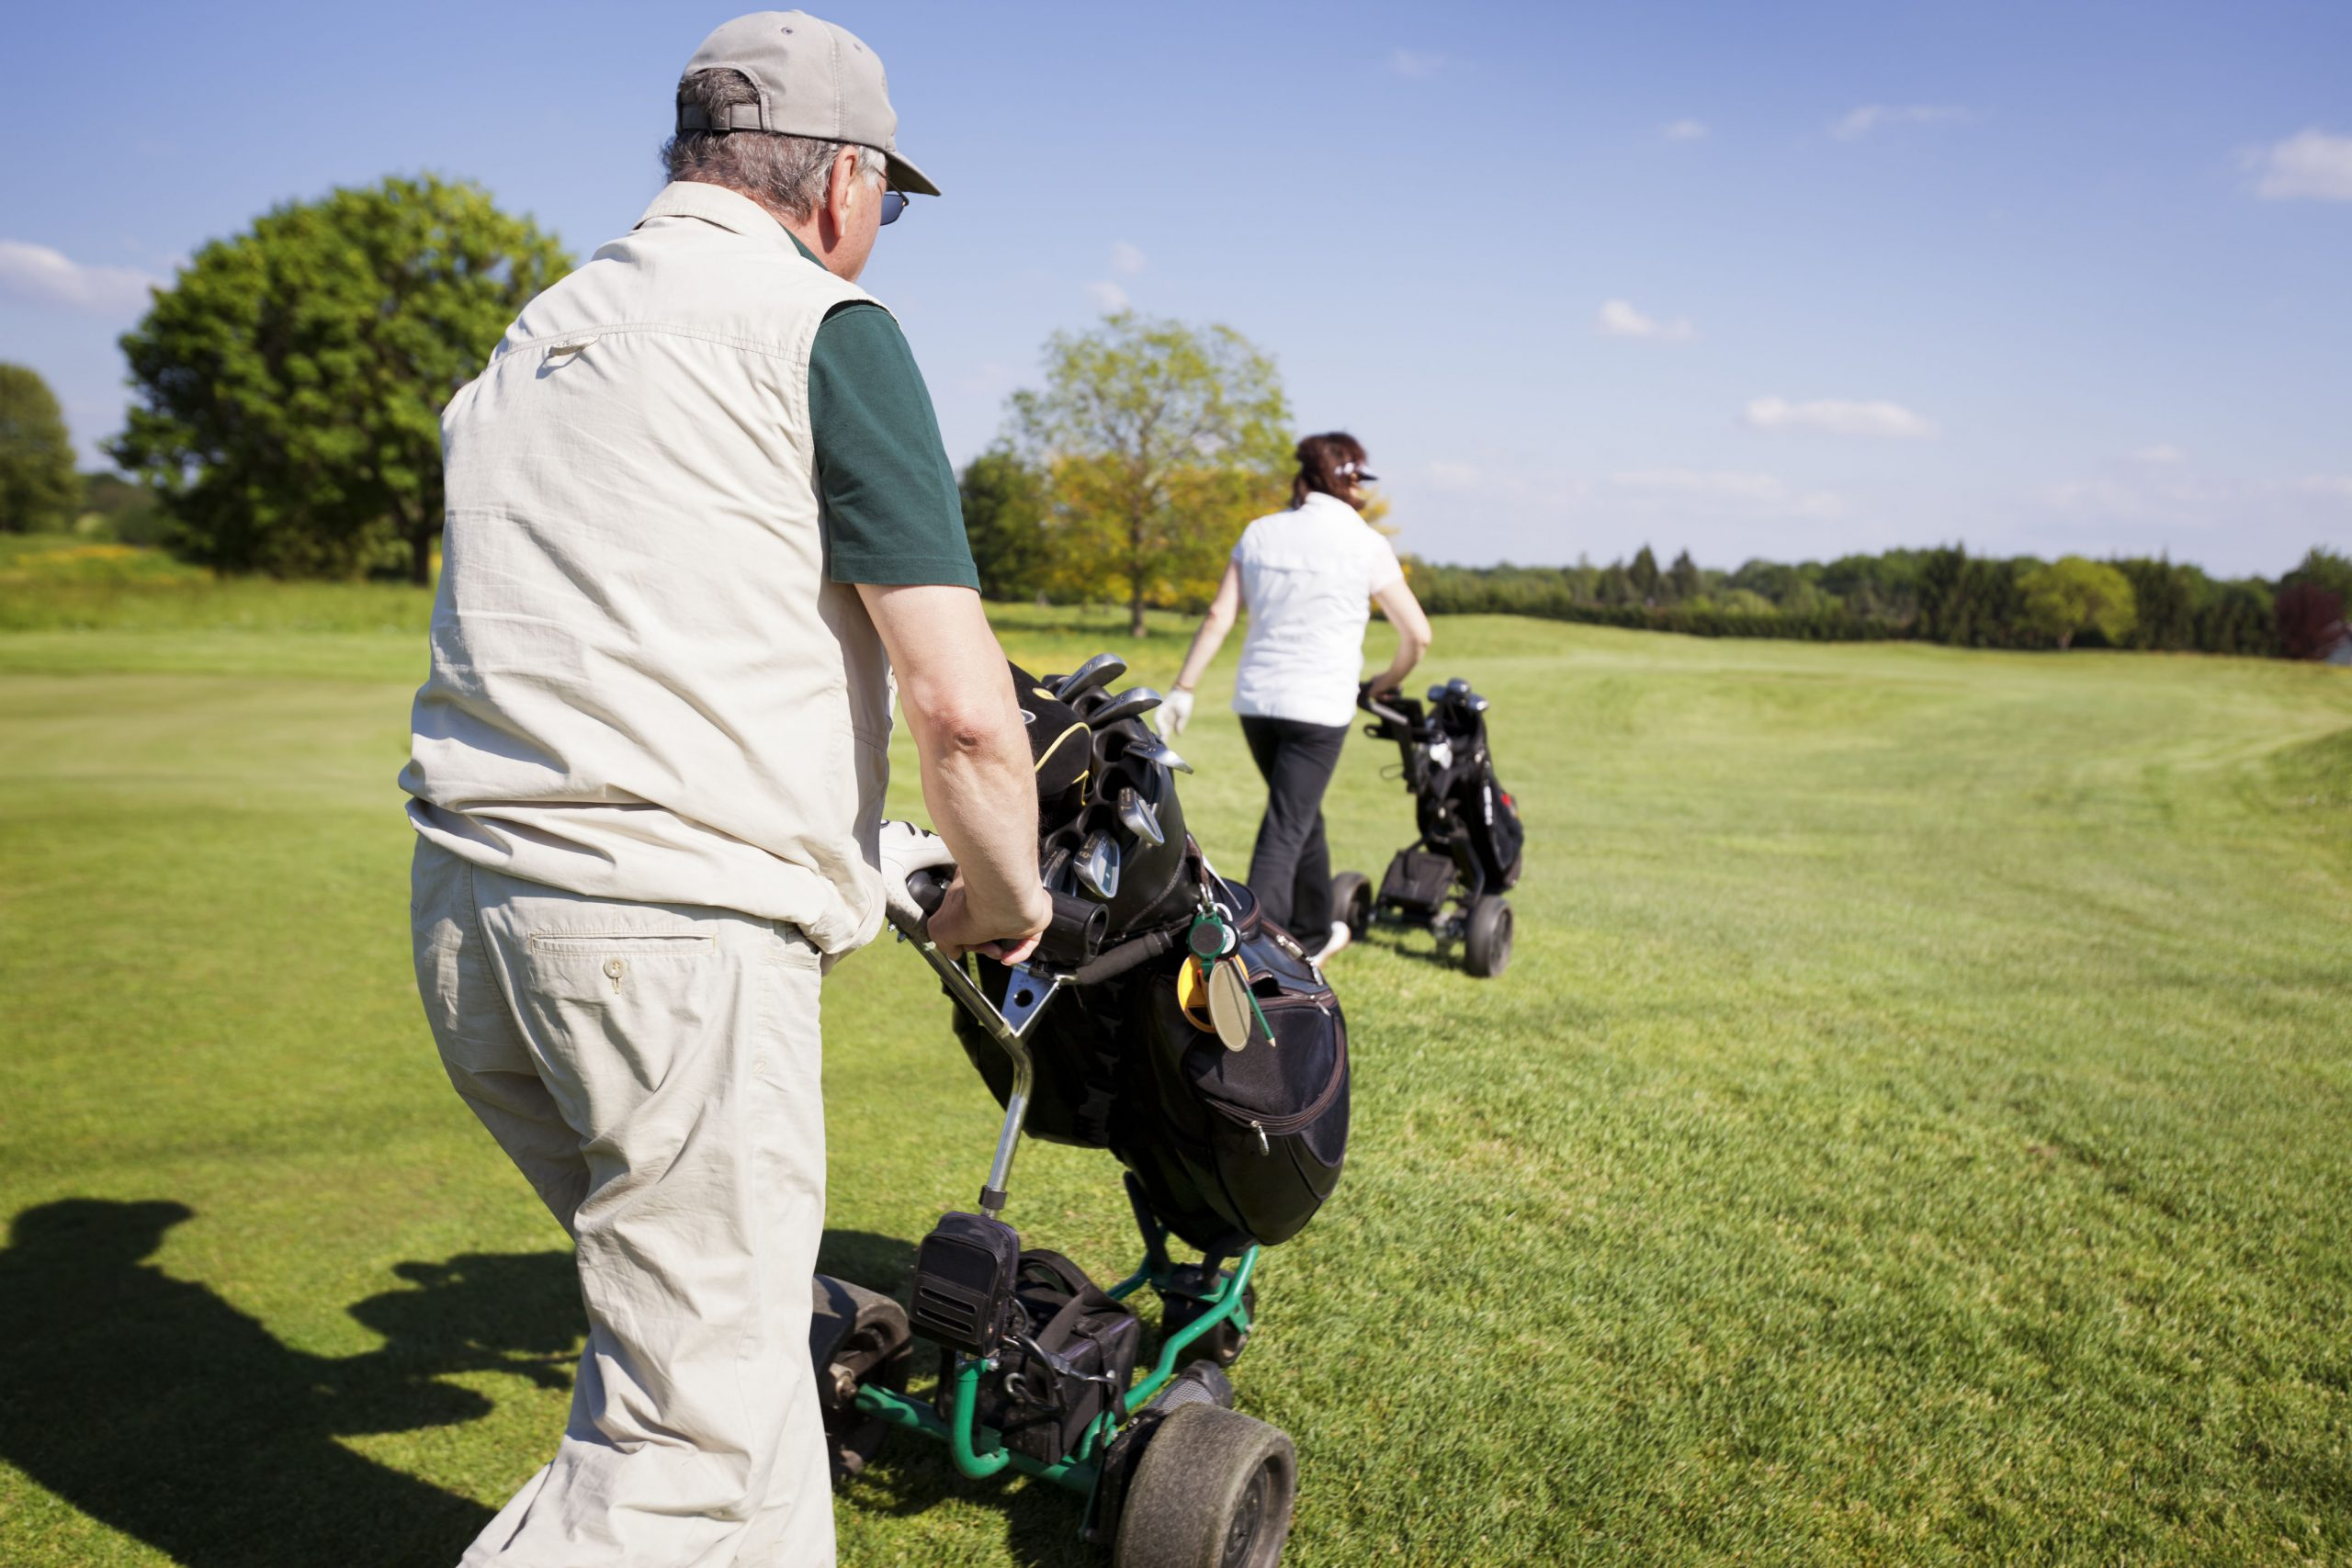 Couple walking on a gold fairway with golf trolleys